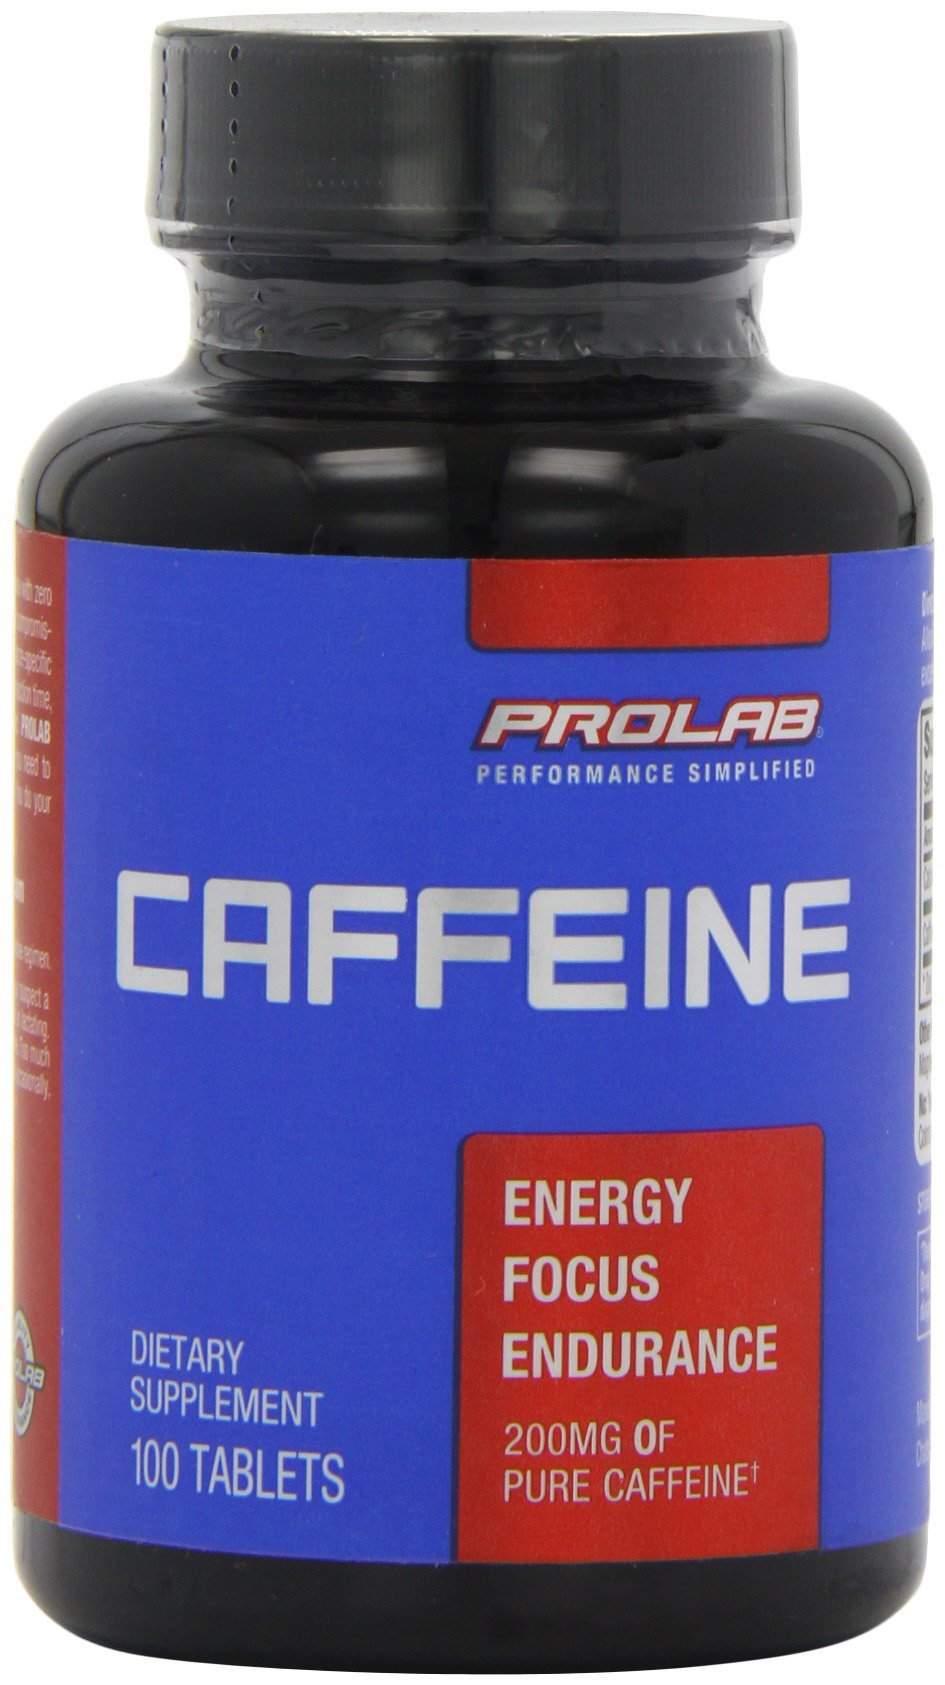 ProLab Caffeine Maximum Potency 200mg Tablets, 100-Count